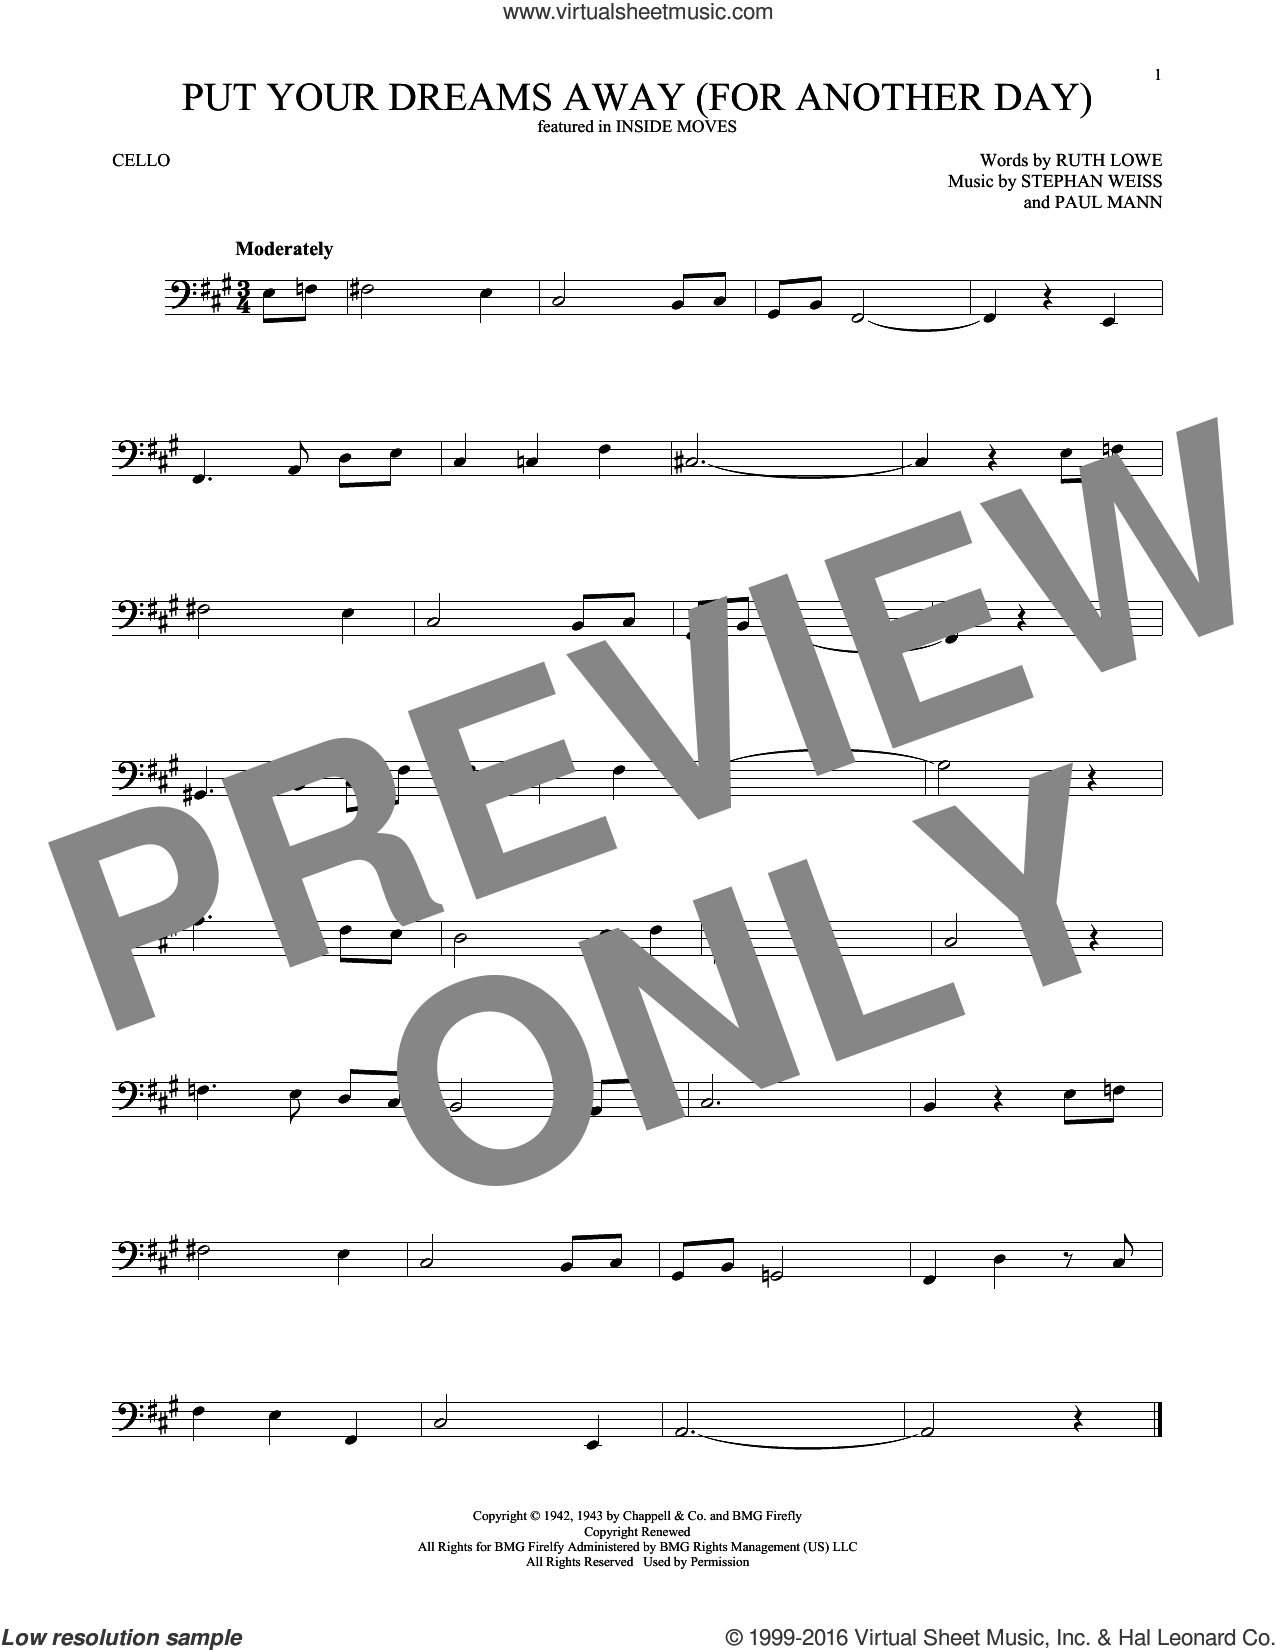 Put Your Dreams Away (For Another Day) sheet music for cello solo by Frank Sinatra and Stephen Weiss. Score Image Preview.